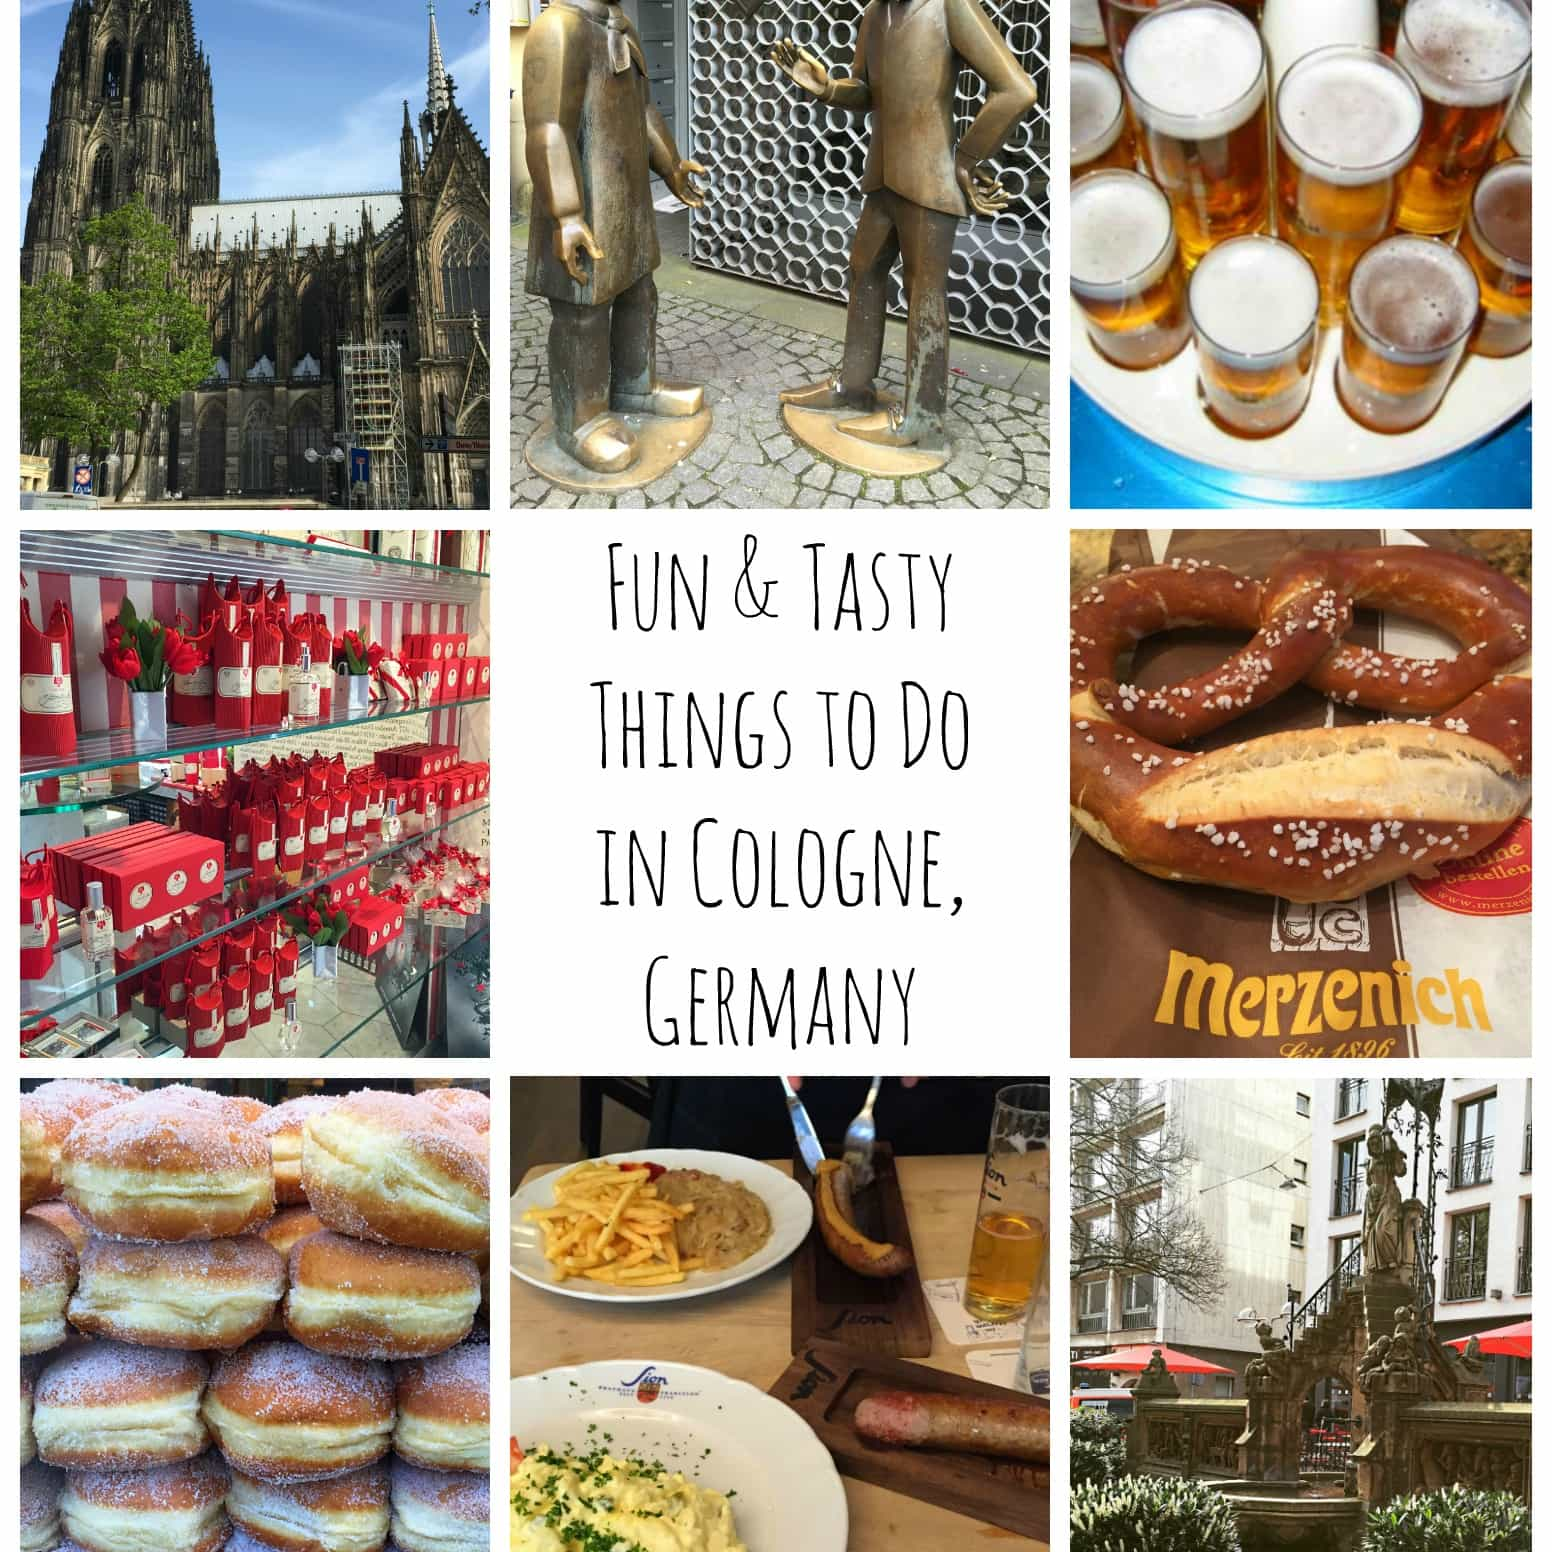 Fun And Tasty Things To Do In Cologne, Germany